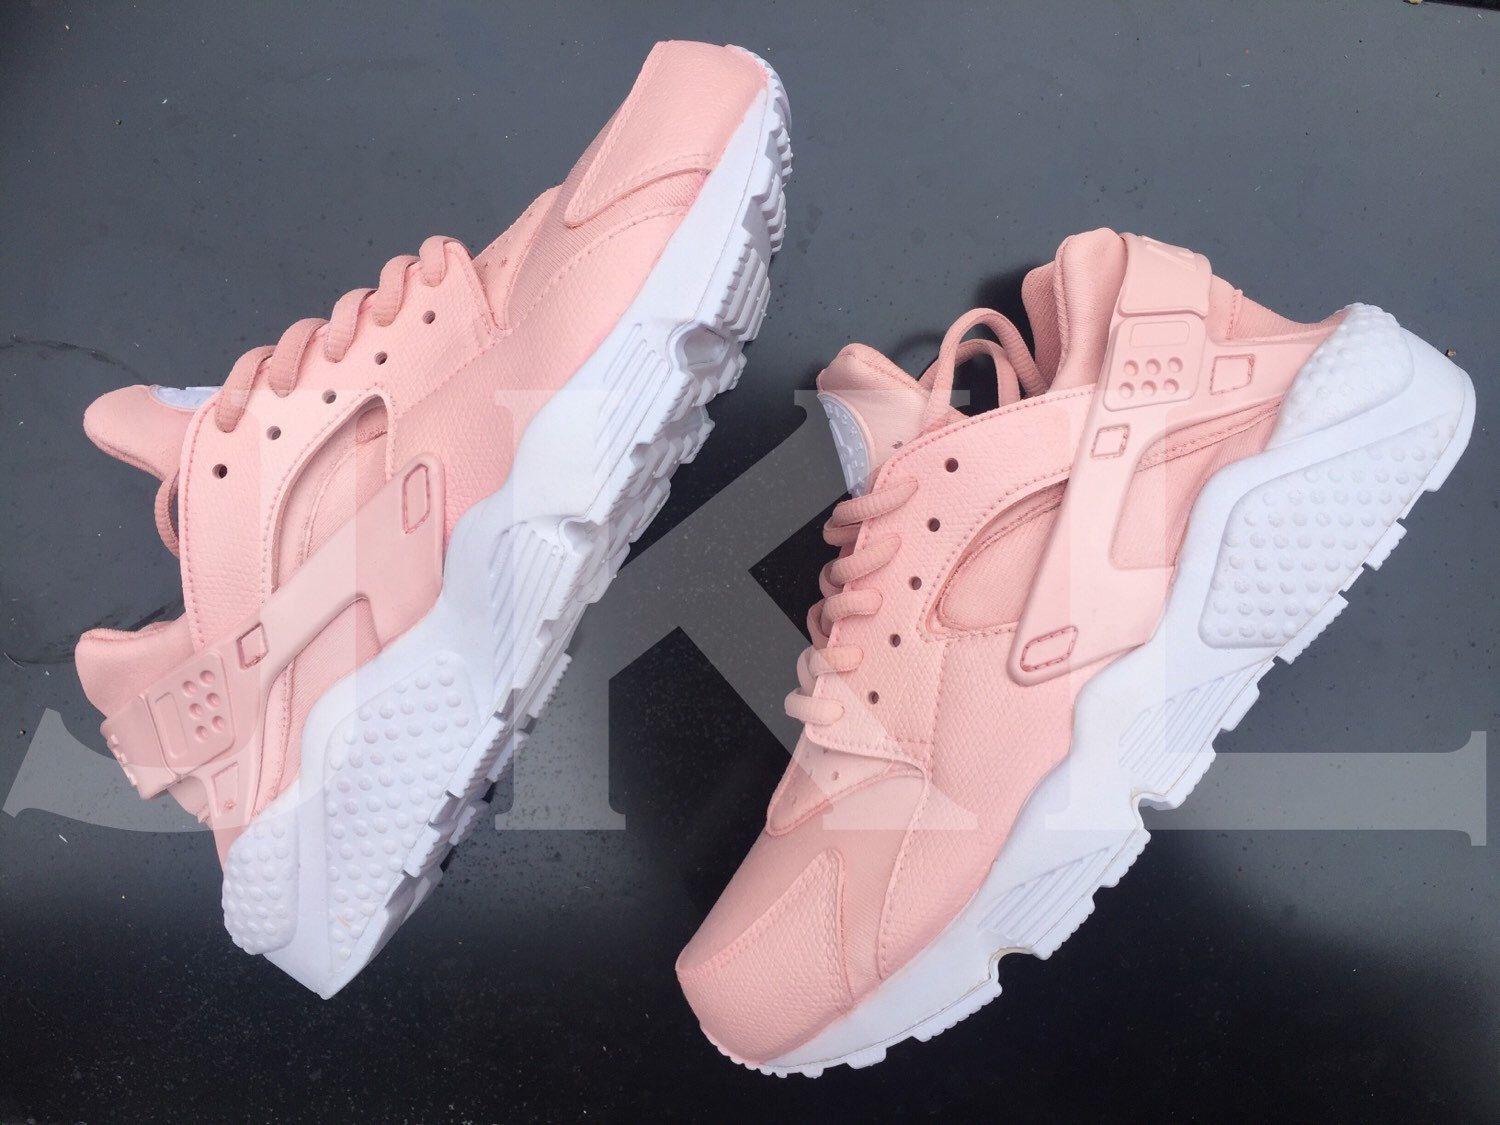 Rose Nike Huarache customs by JKLcustoms  5a60222f2